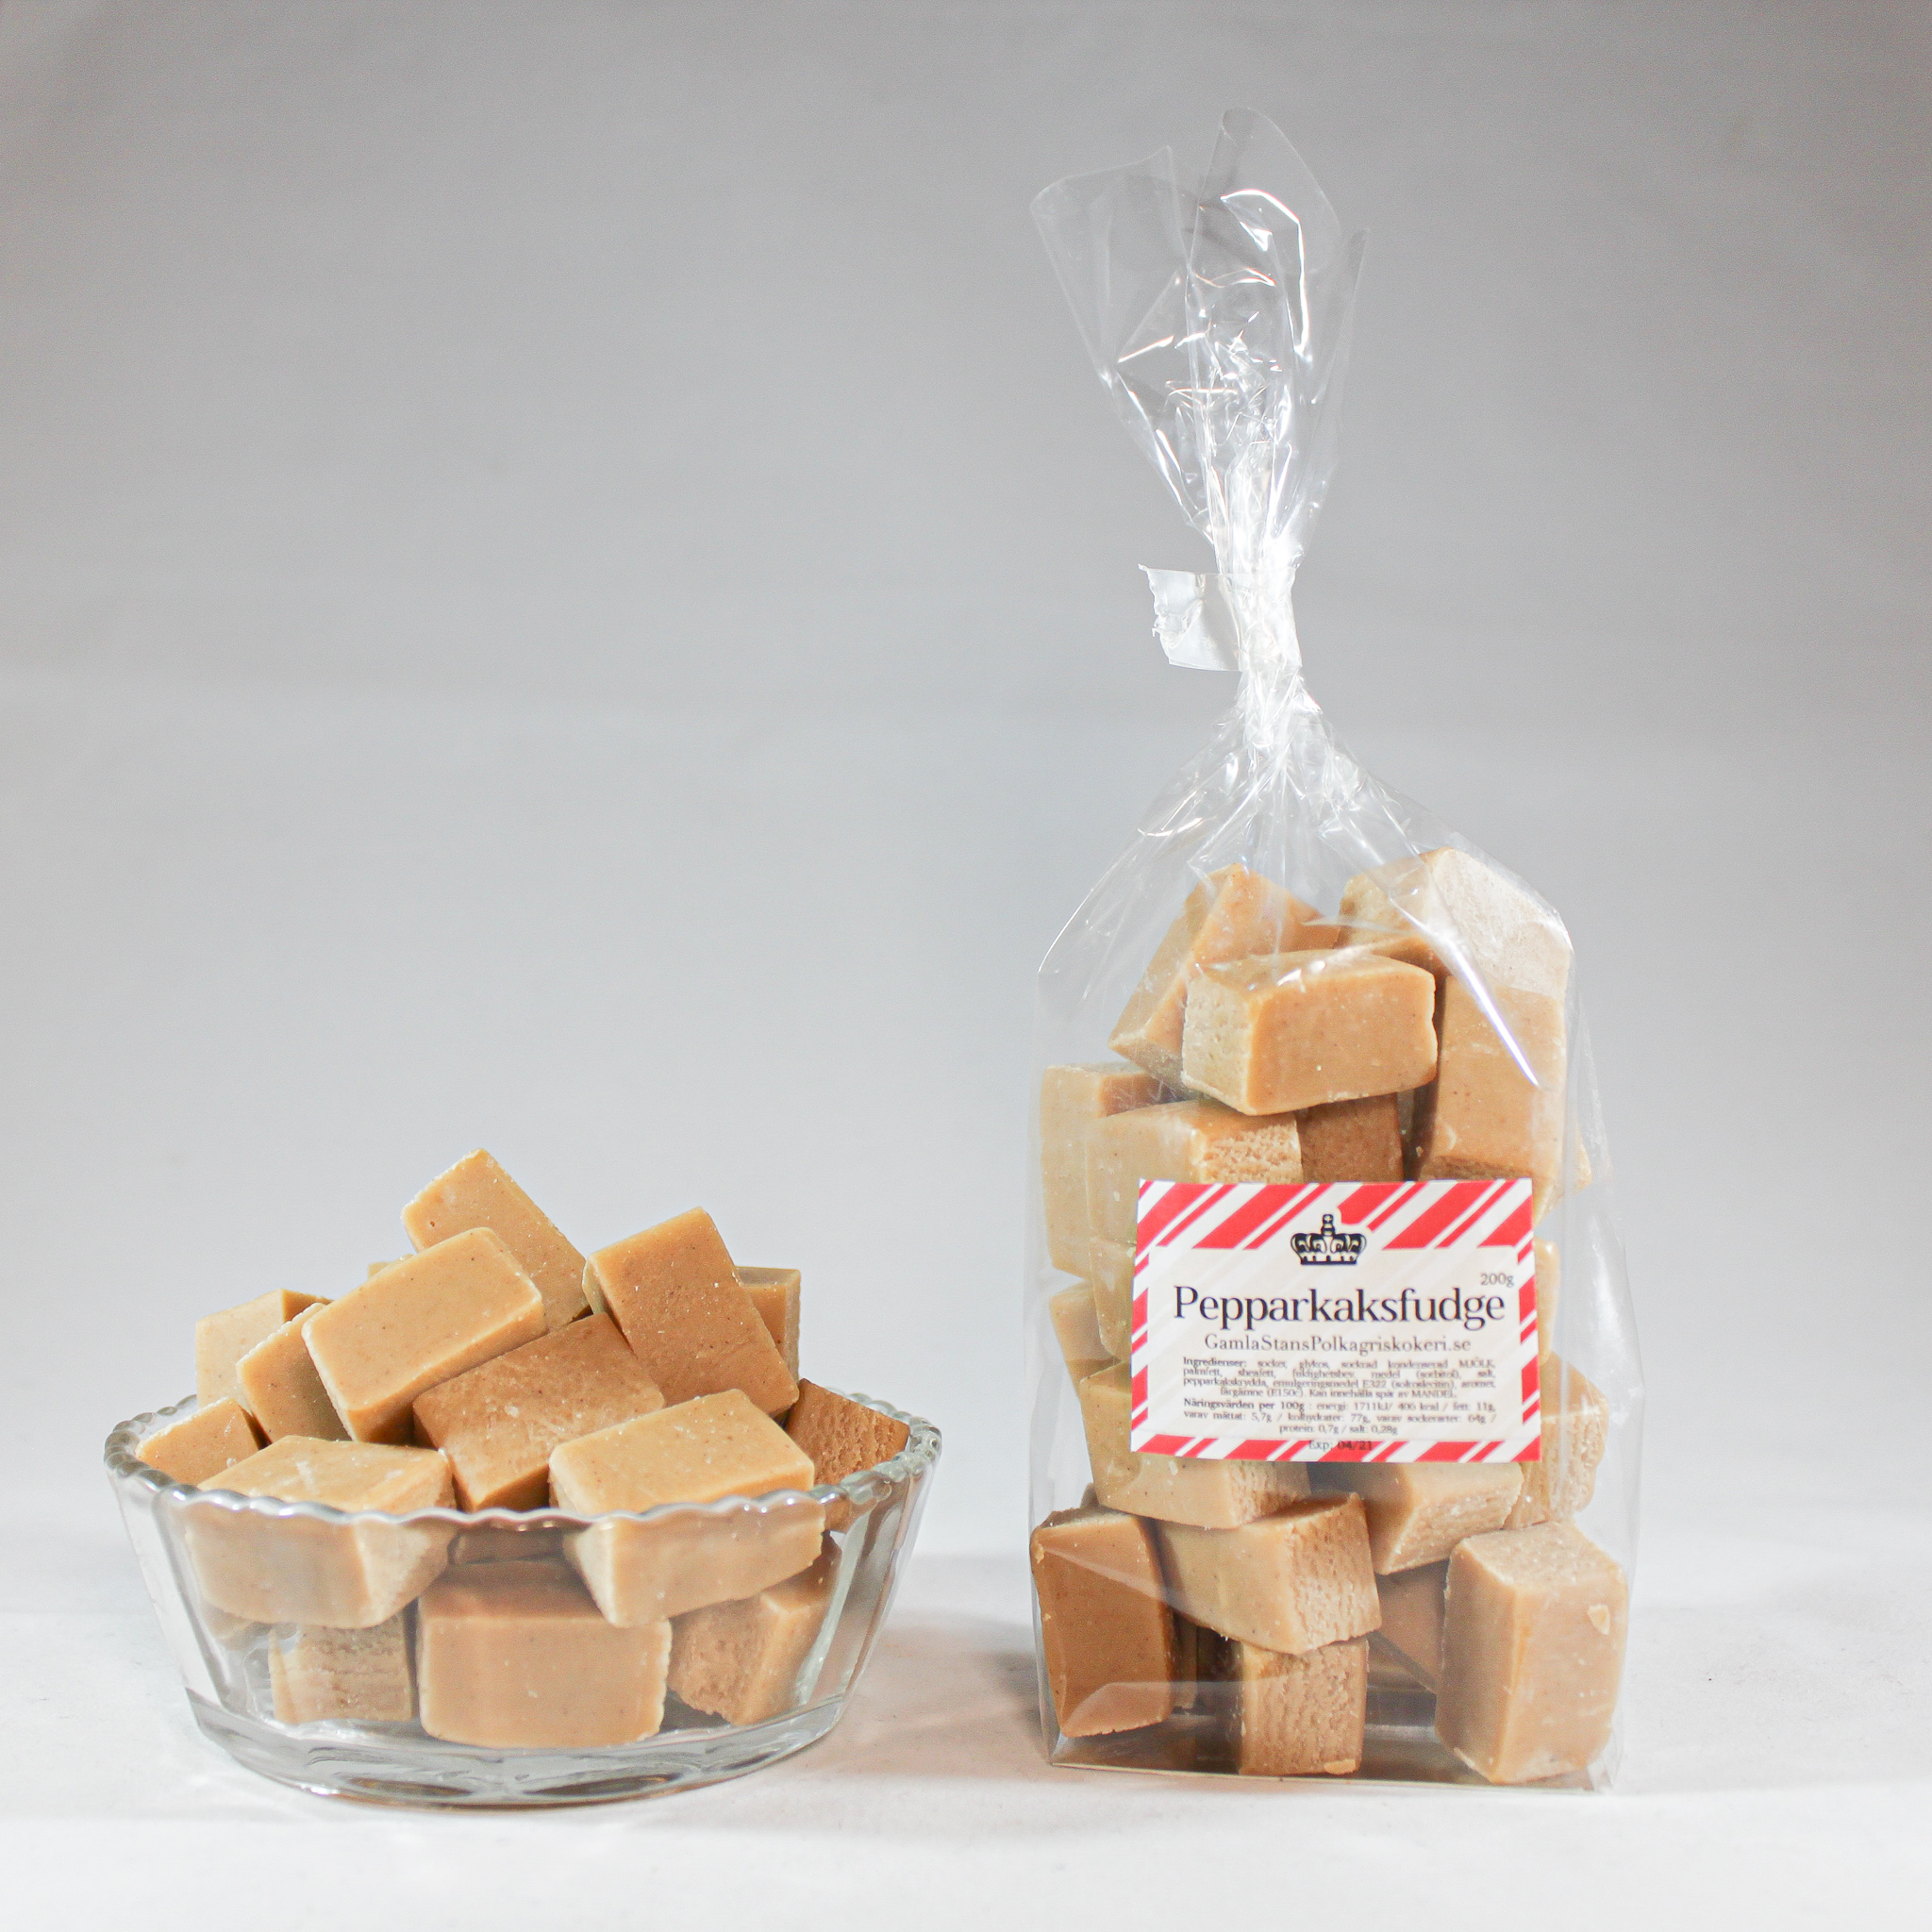 Pepparkaksfudge